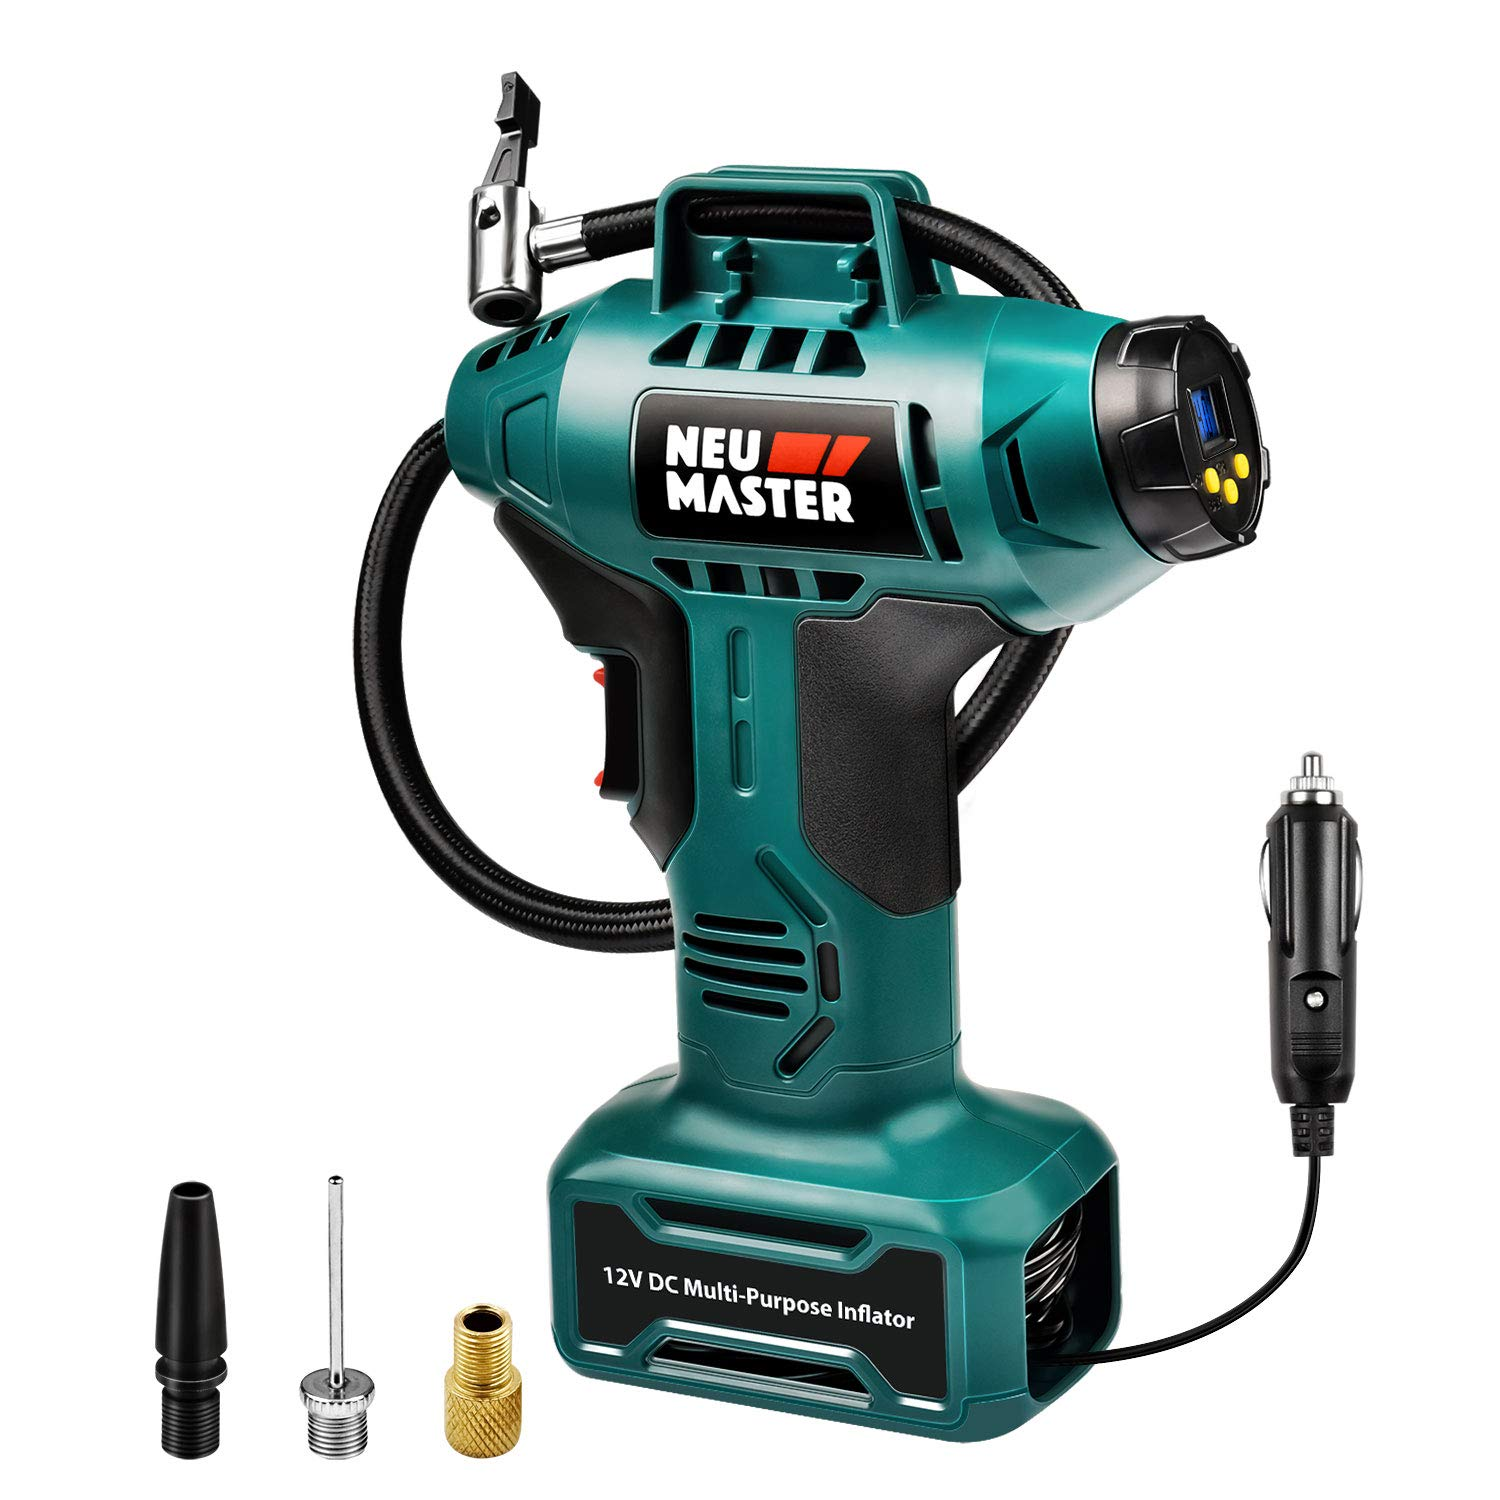 NEU MASTER Tire inflator, Portable Air Compressor 160 PSI, 12V, Air Pump with Digital Pressure Gauge, LED Lighting, 3 Types Nozzles, Handheld Pump by Cigarette Lighter Power Source by NEU MASTER